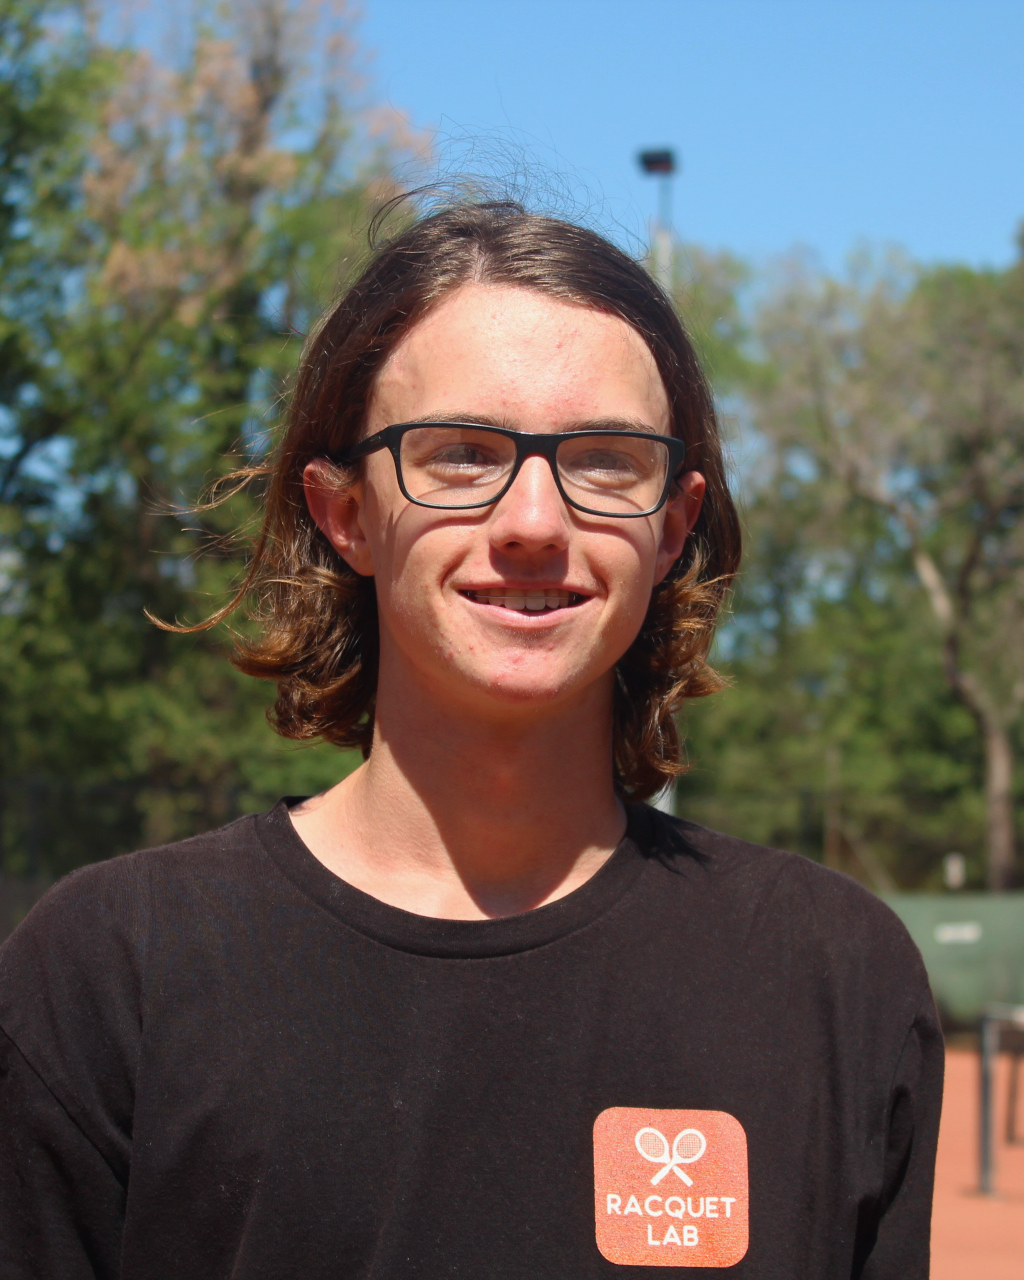 Felix Stephens - Felix is a Tennis Australia qualified coach. He is the captain of the top Fitzroy Tennis Club boys team.Favourite player : Dominic ThiemFavourite tennis moment : 2014 Aus Open, Hewitt vs Seppi - one of the first matches I watched in real lifeFavourite other sport : Basketball